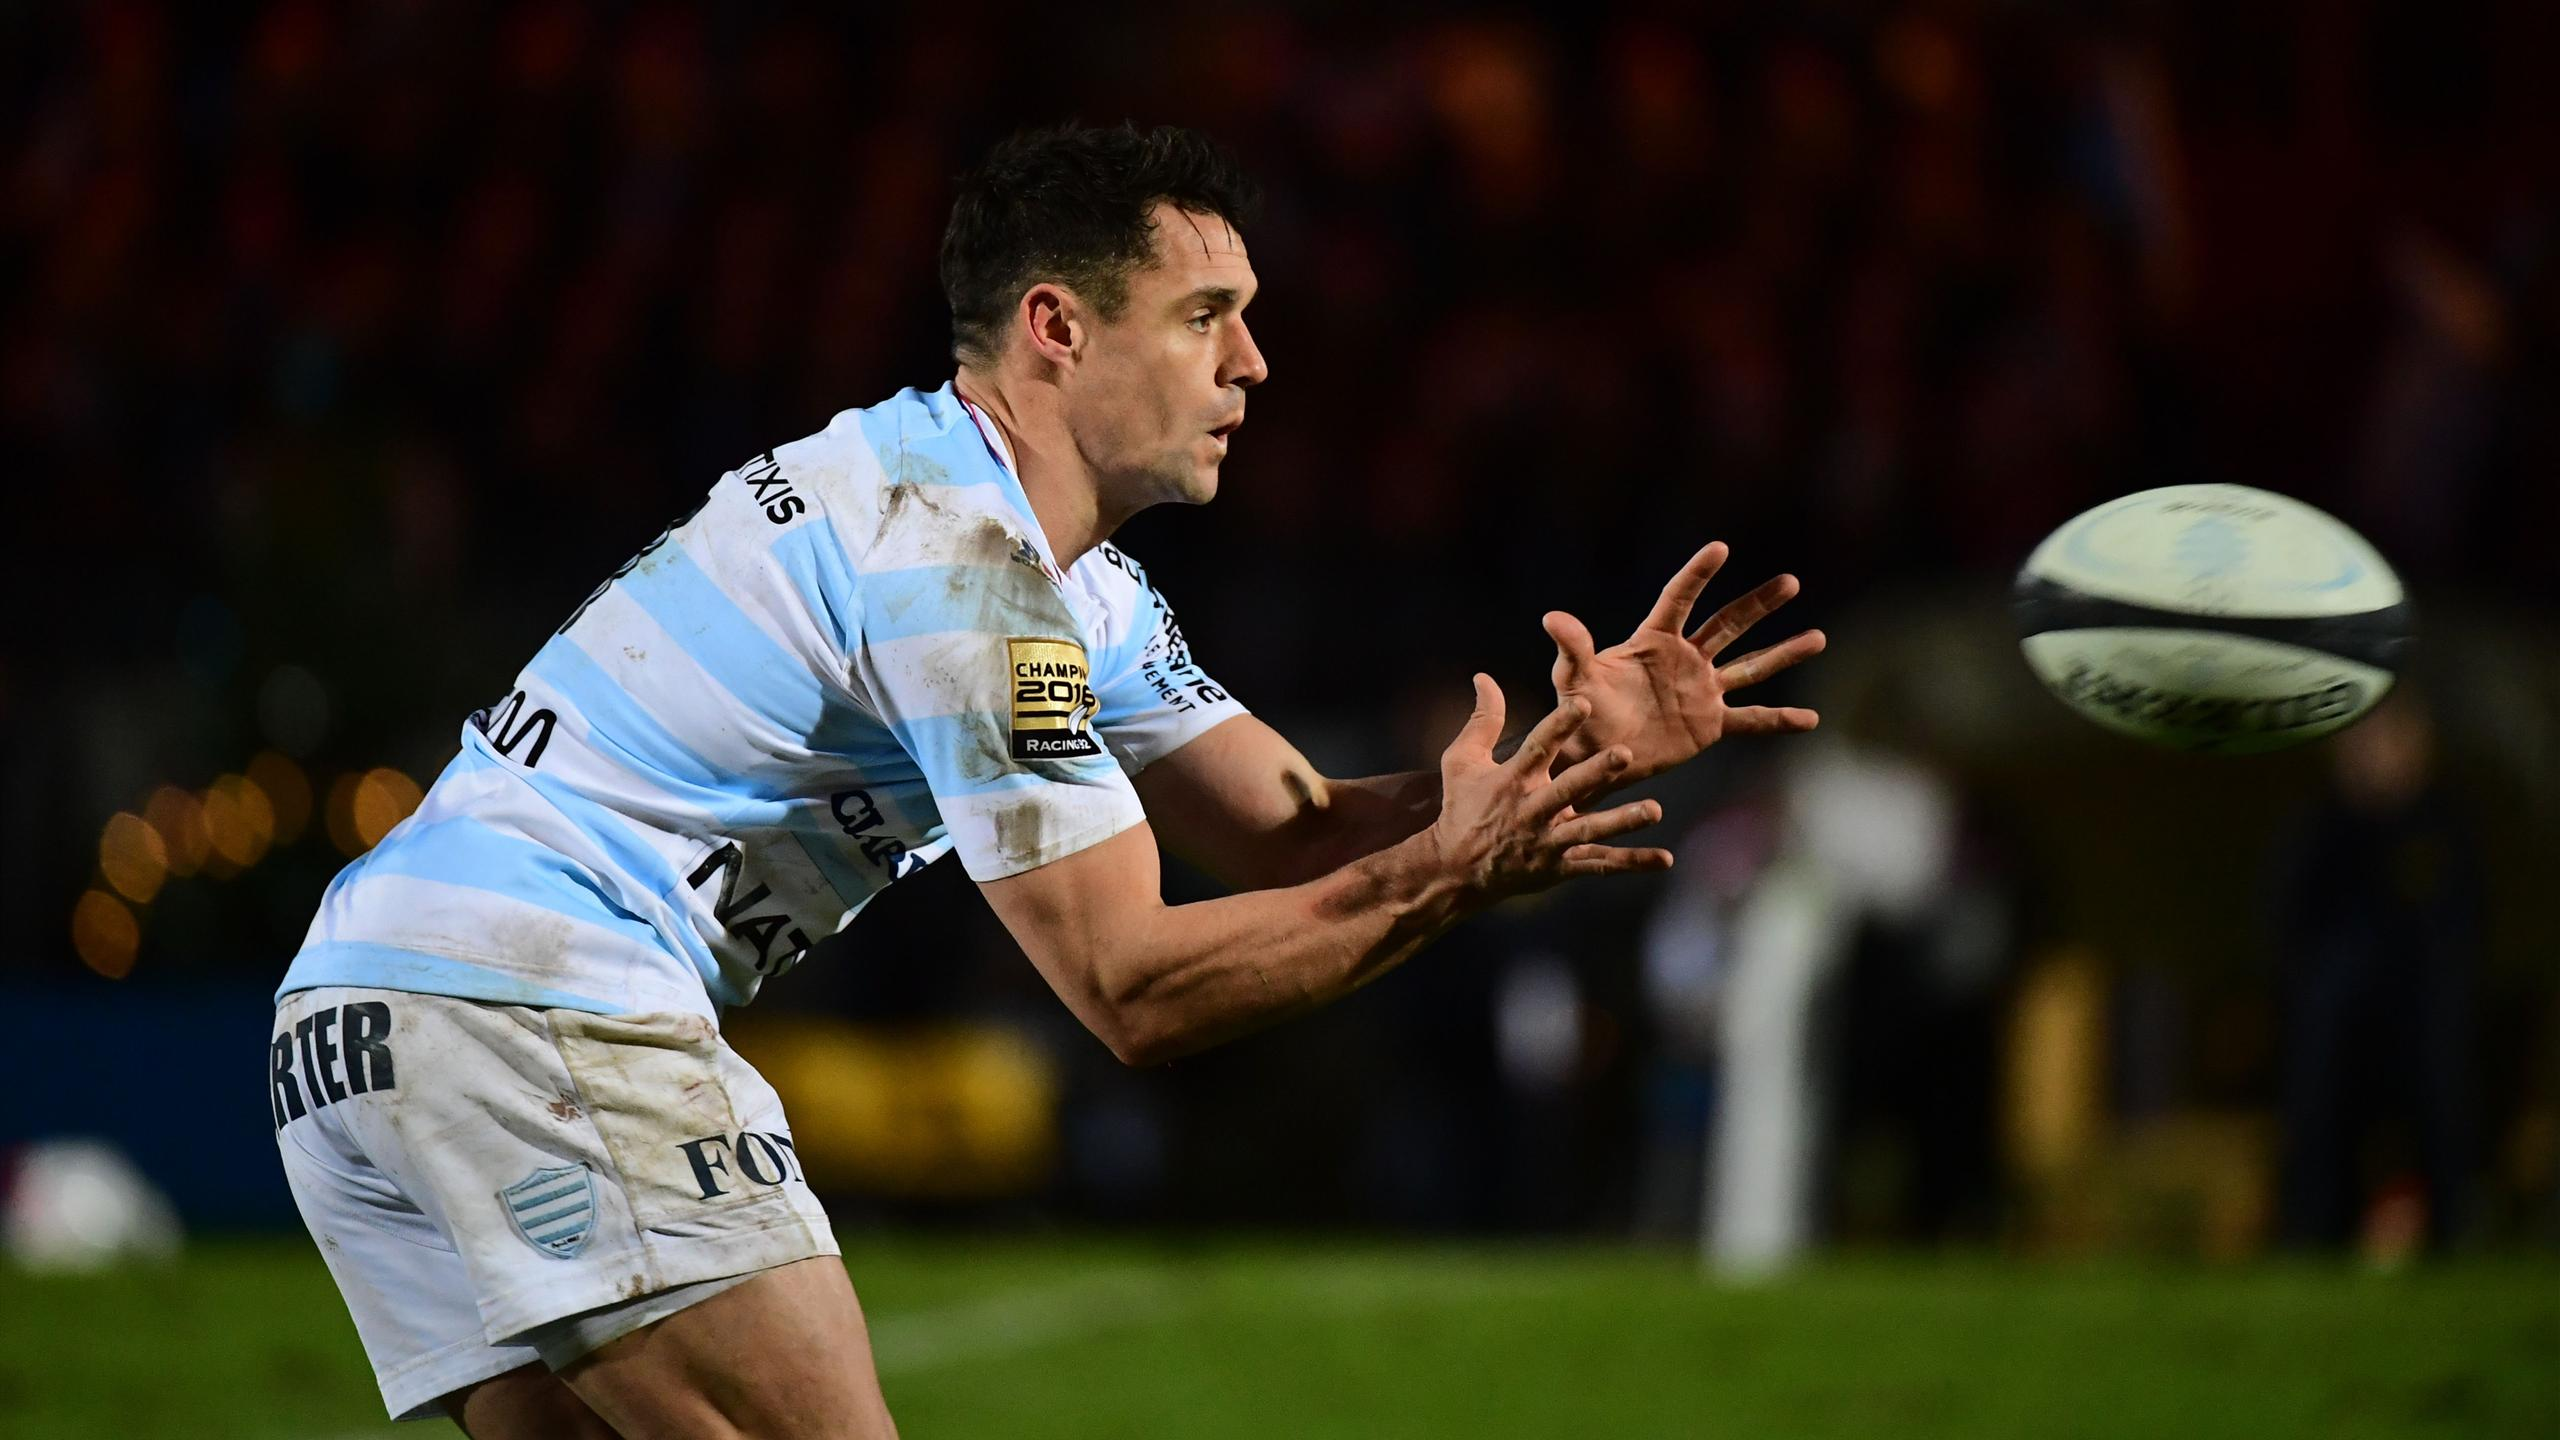 Dan Carter (Racing 92) - 23 décembre 2016